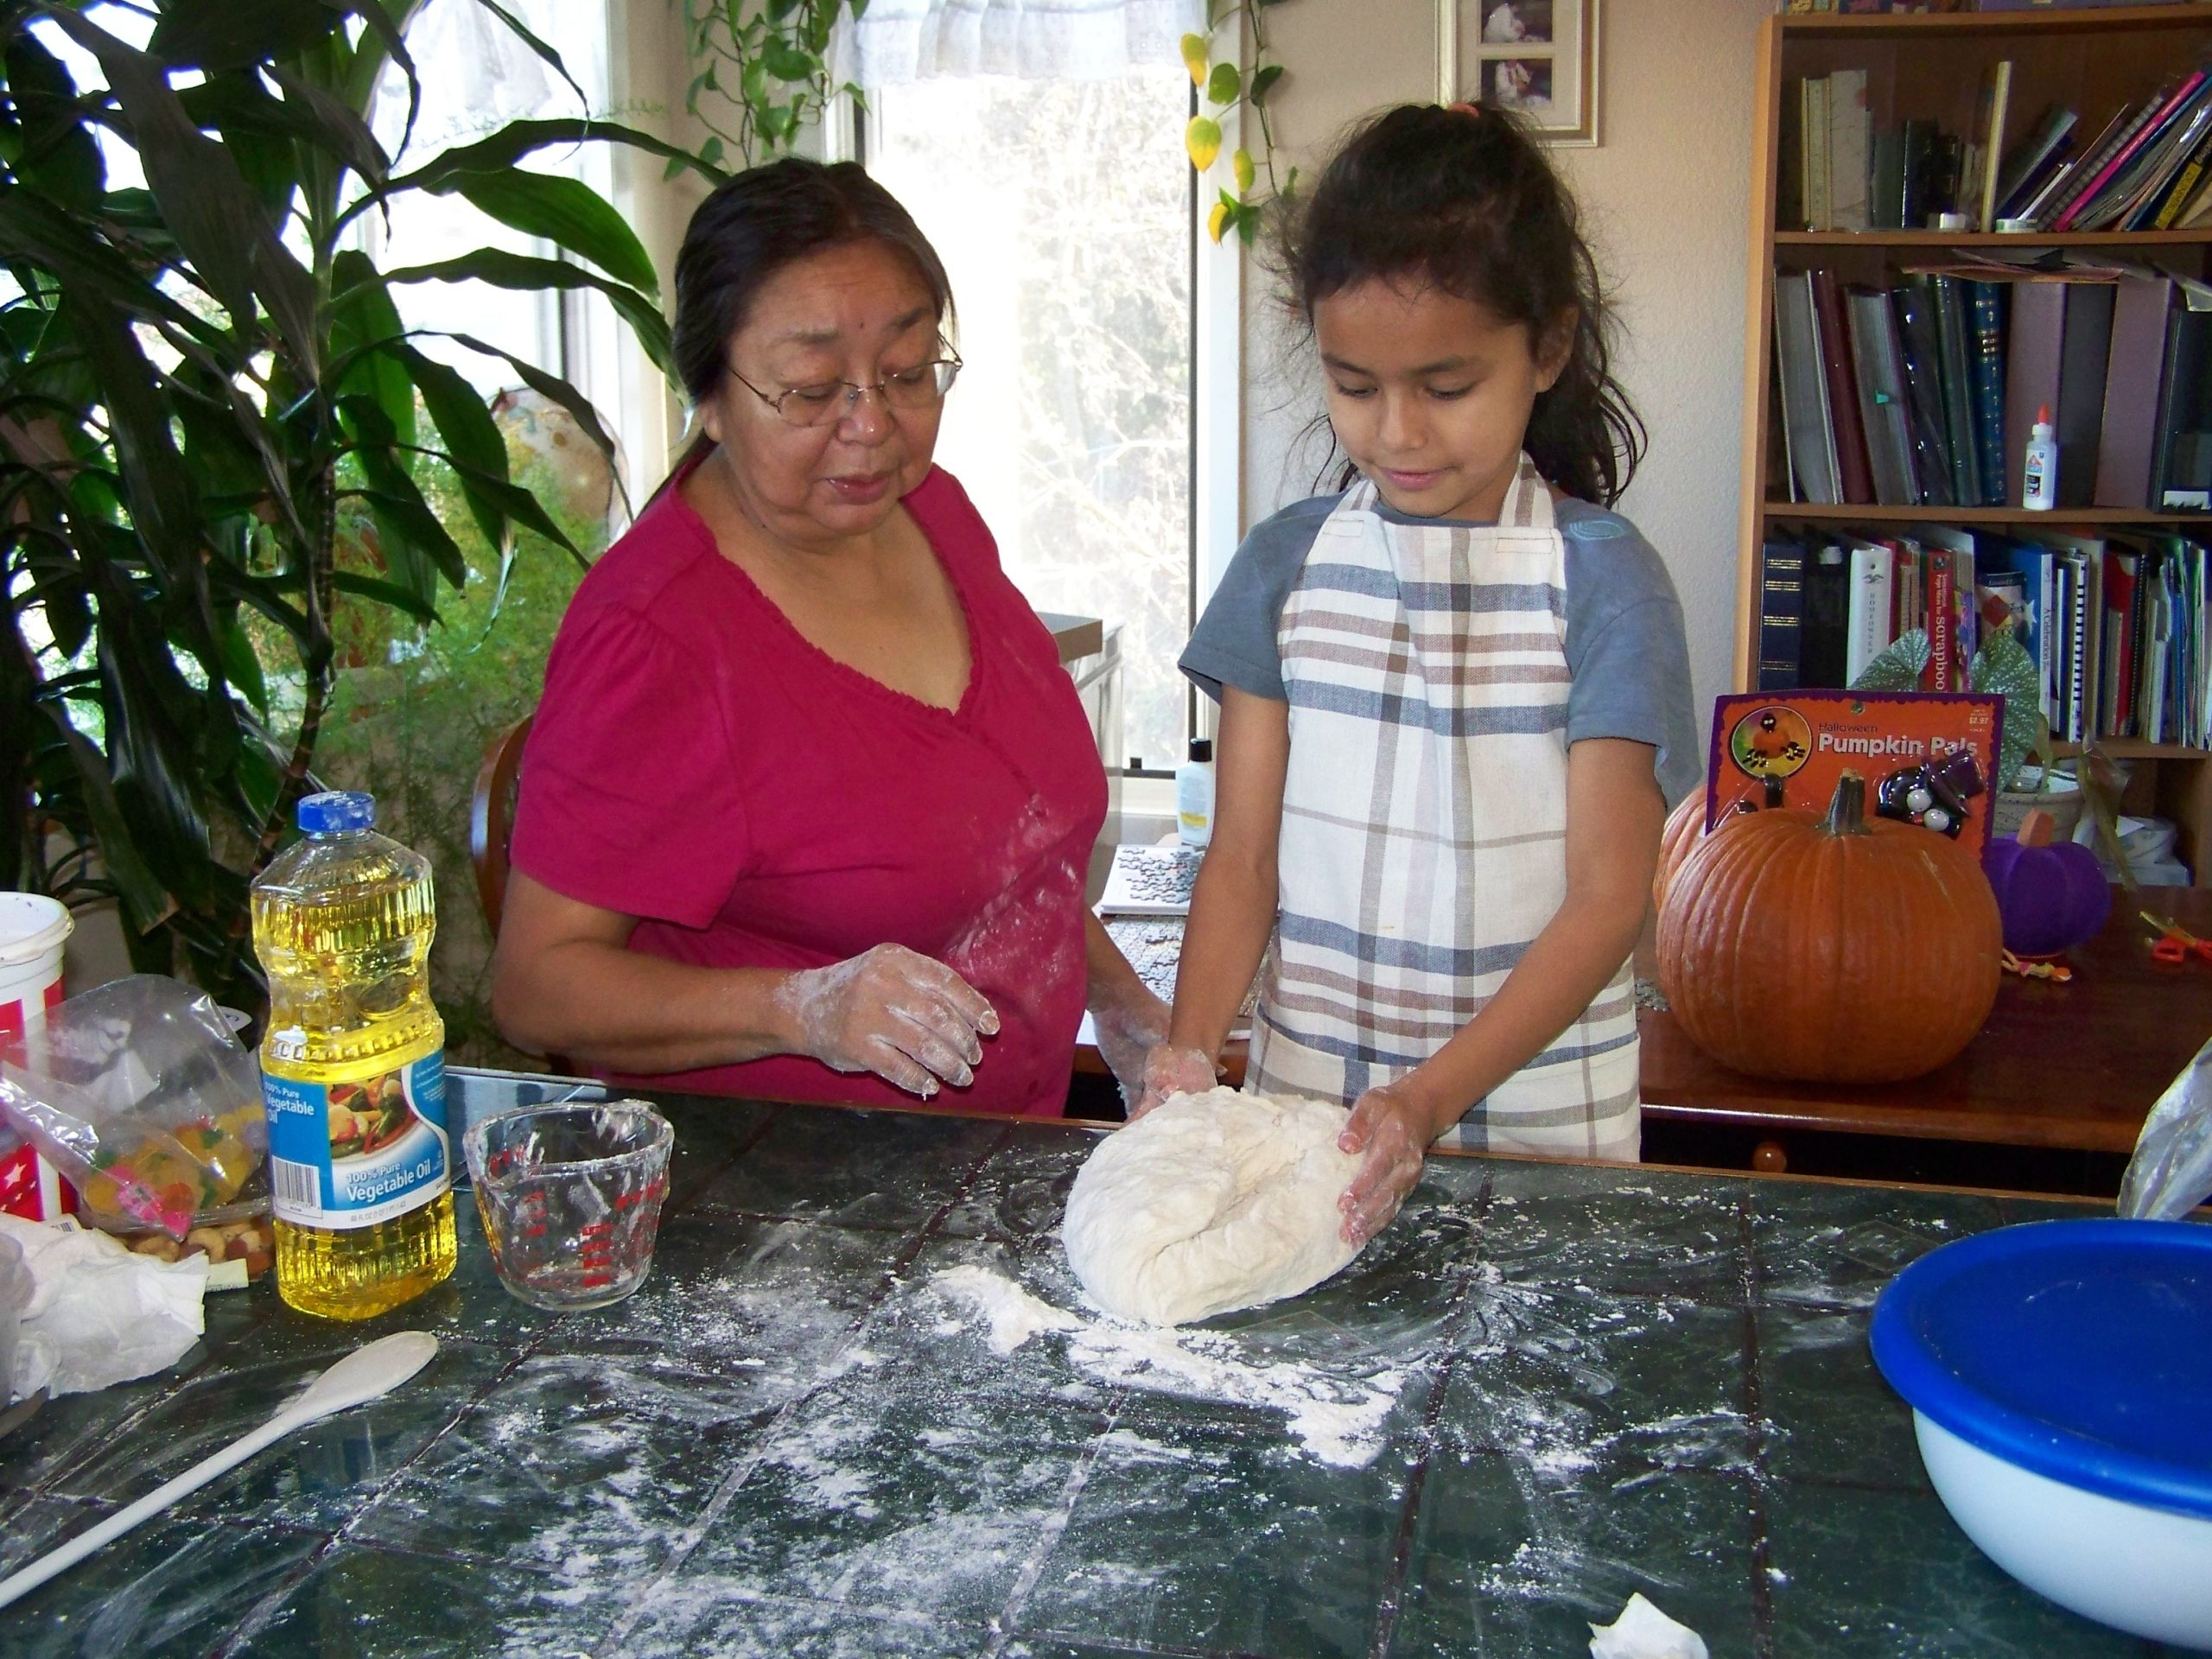 A grandmother teaches her granddaughter how to make bread